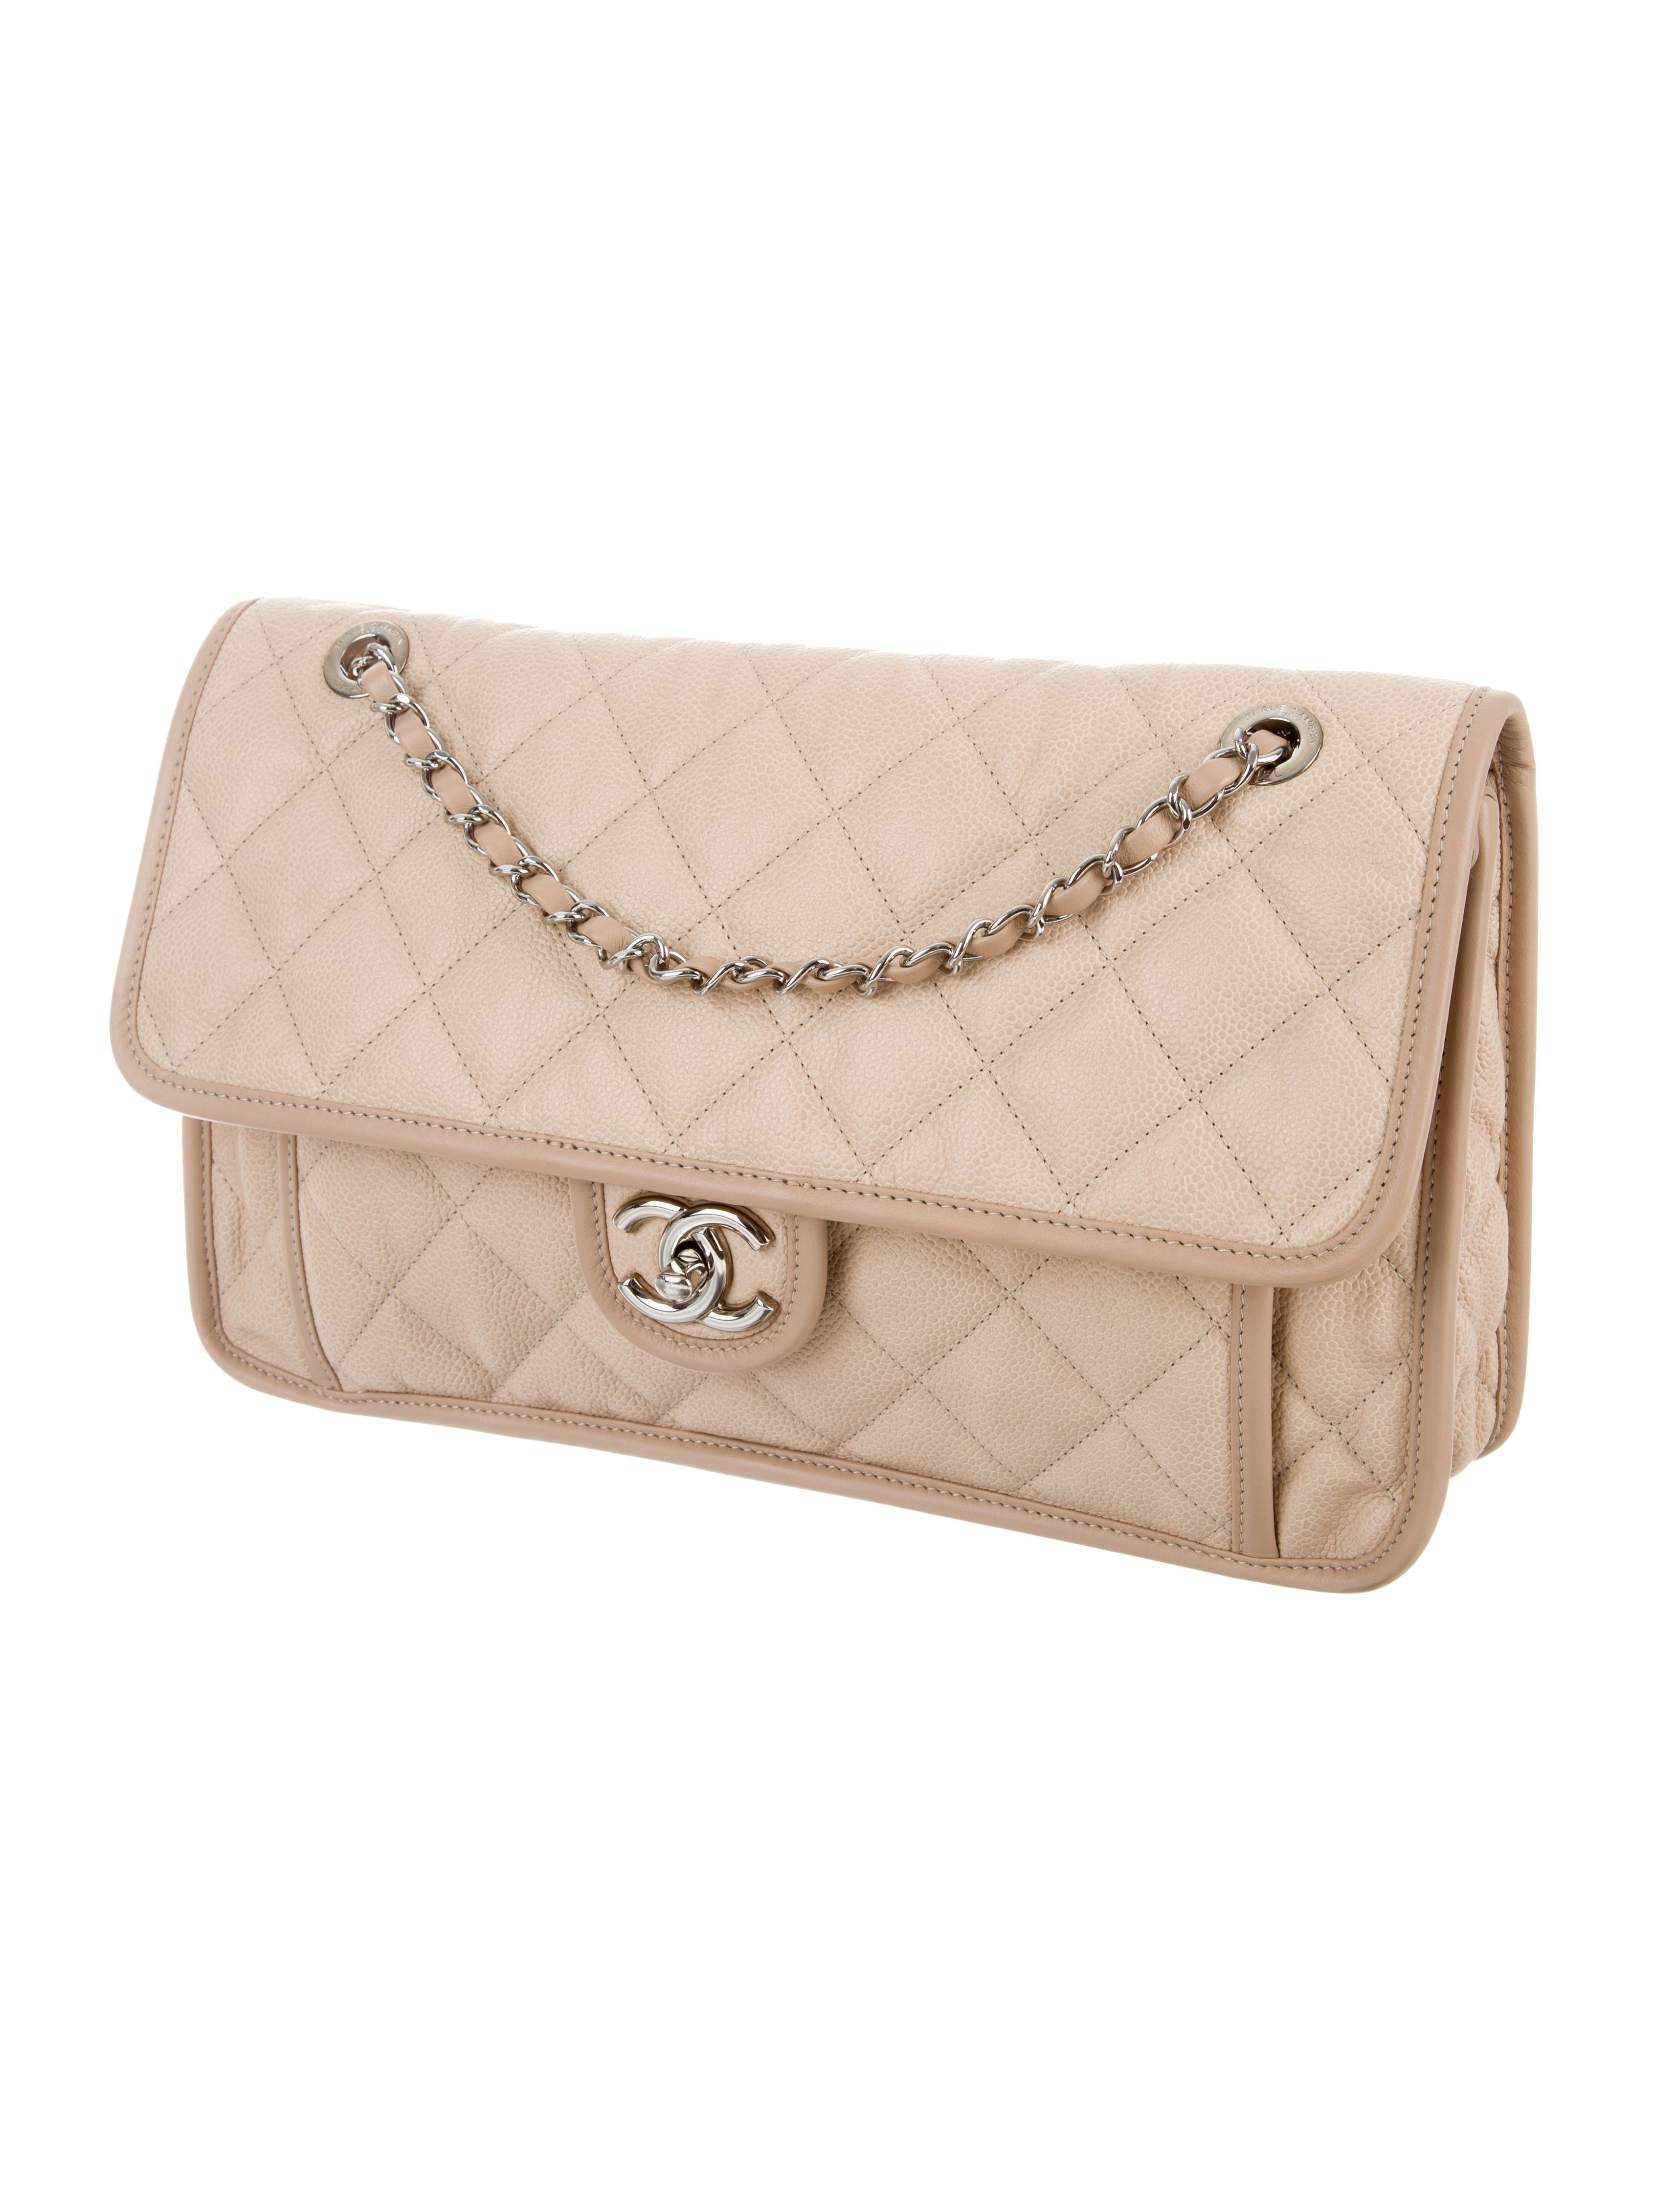 c223a2676262 Chanel French Riviera Flap Bag Price | Stanford Center for ...